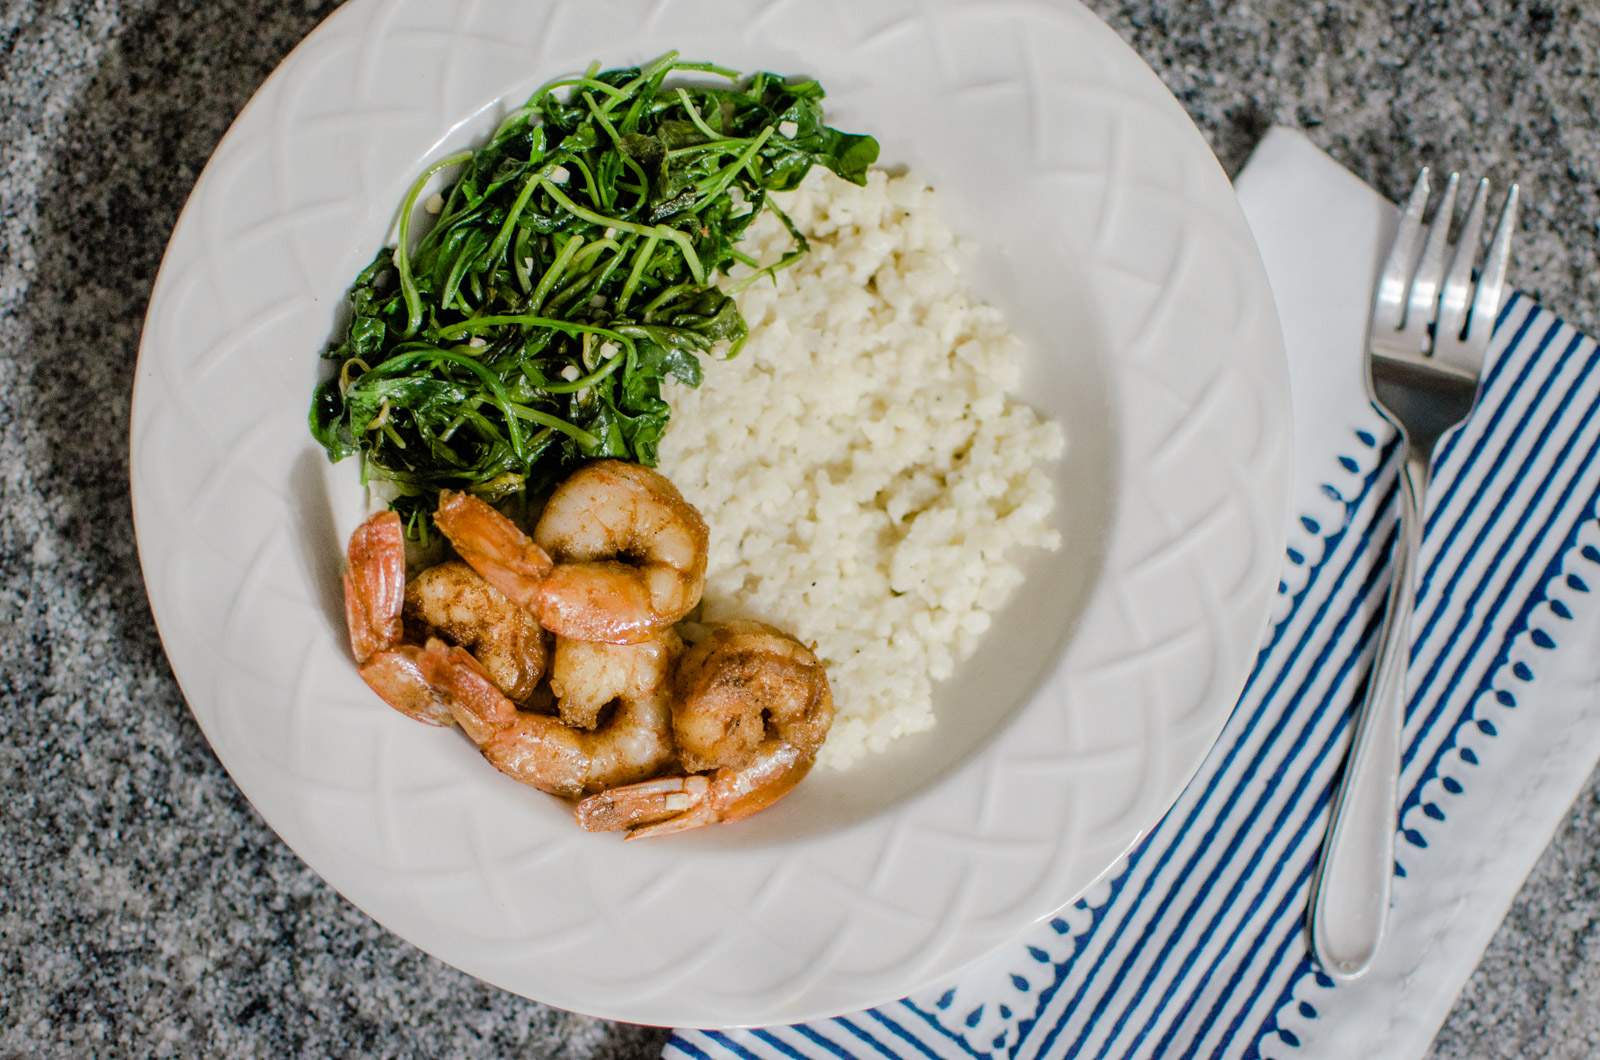 Virginia blogger, Lauren Dix, shares her top five favorite bowl recipes, including this delicious shrimp and cauliflower grits bowl!